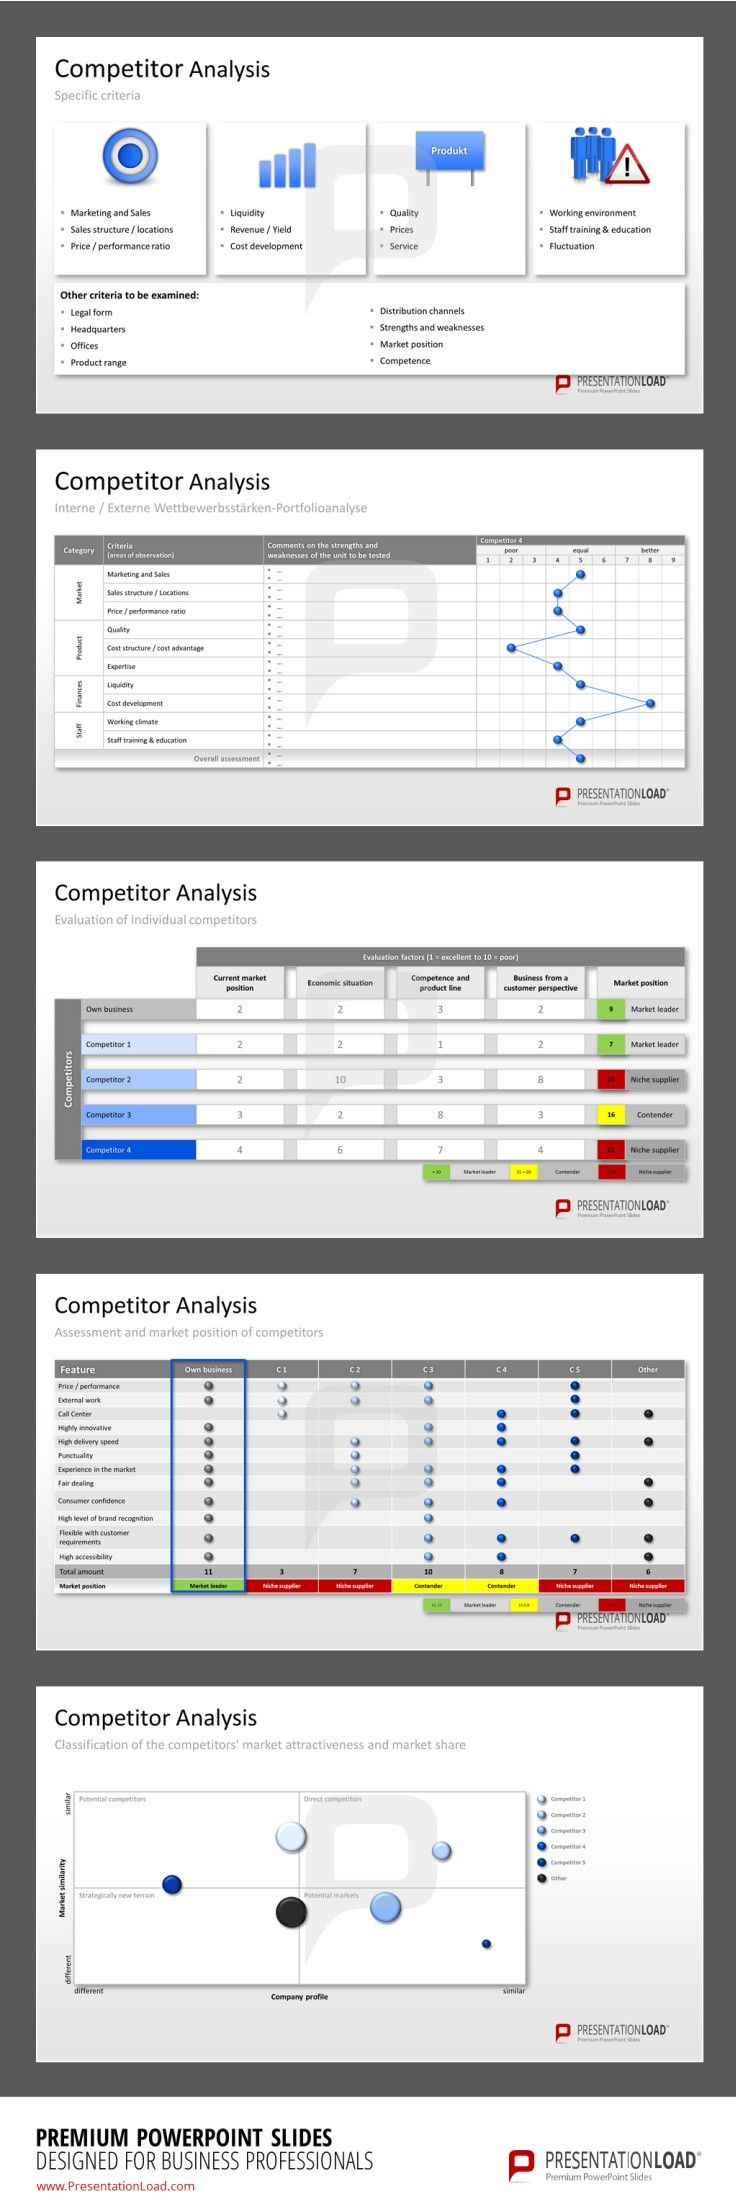 Competitor Analysis Powerpoint Templates Evaluate Competitors By